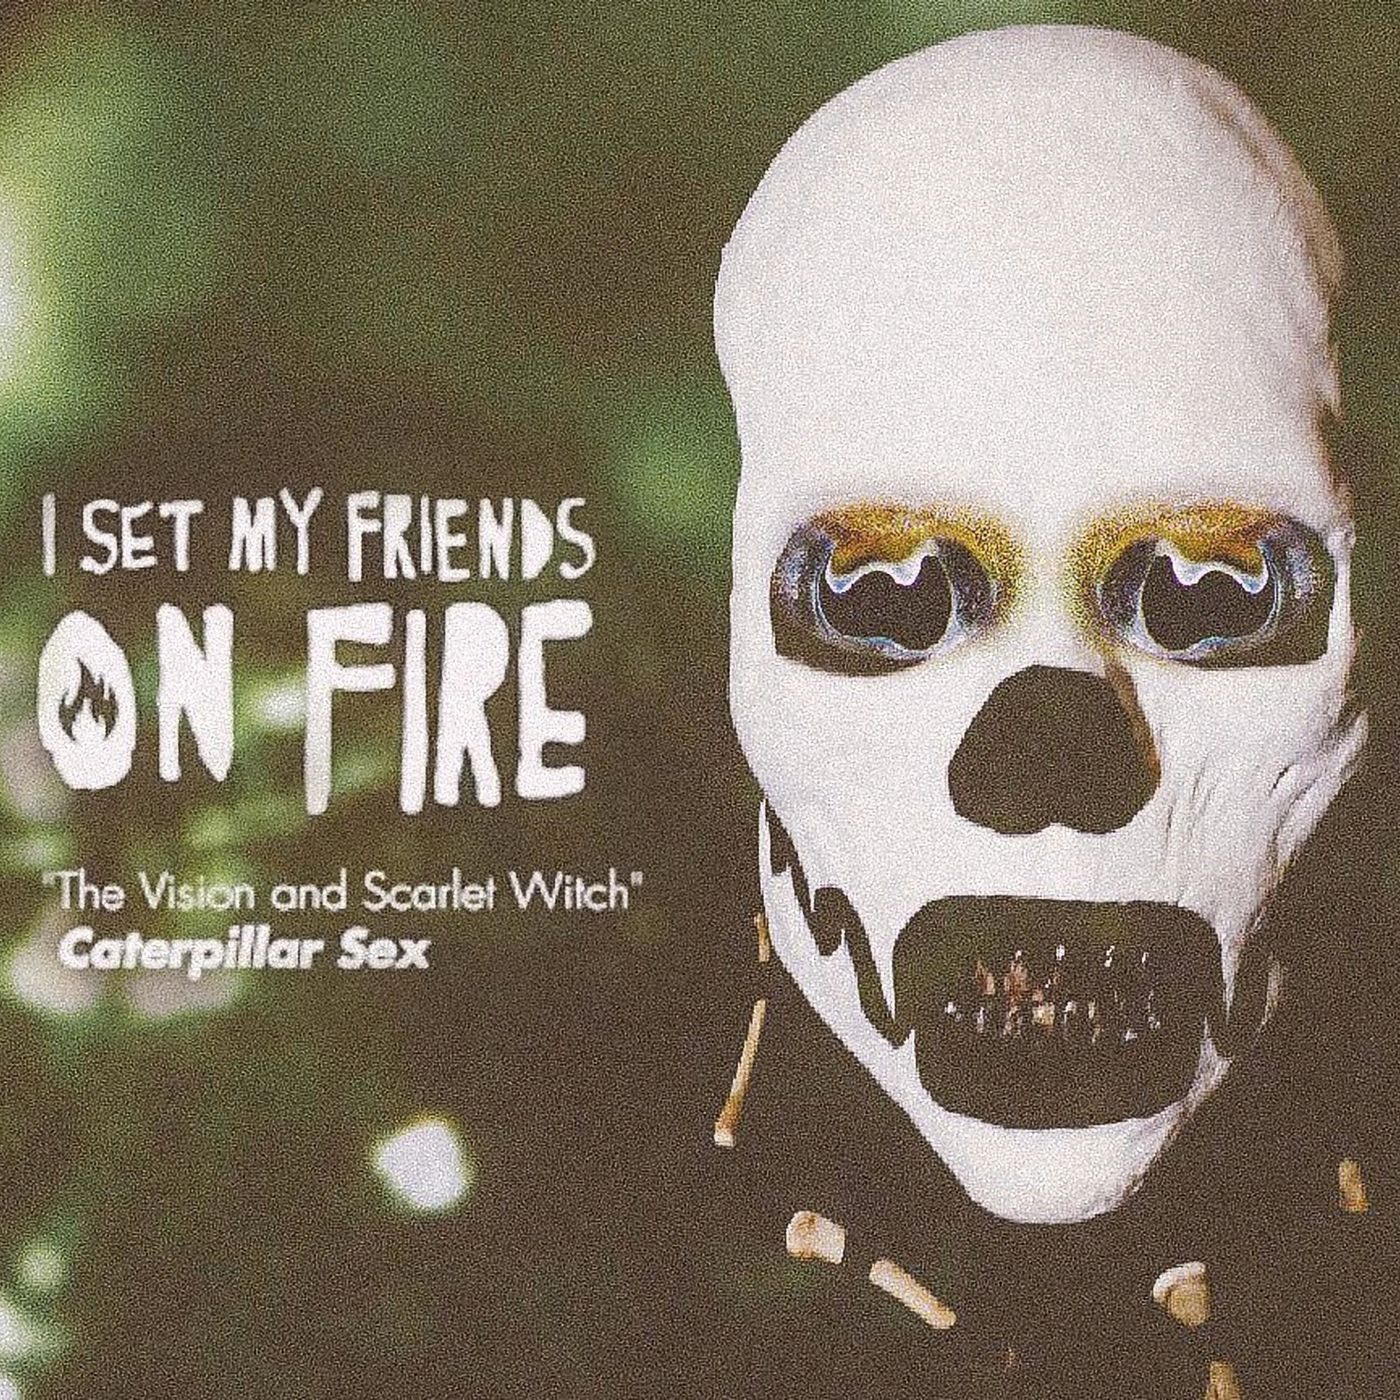 I Set My Friends On Fire - The Vision and Scarlet Witch [single] (2019)